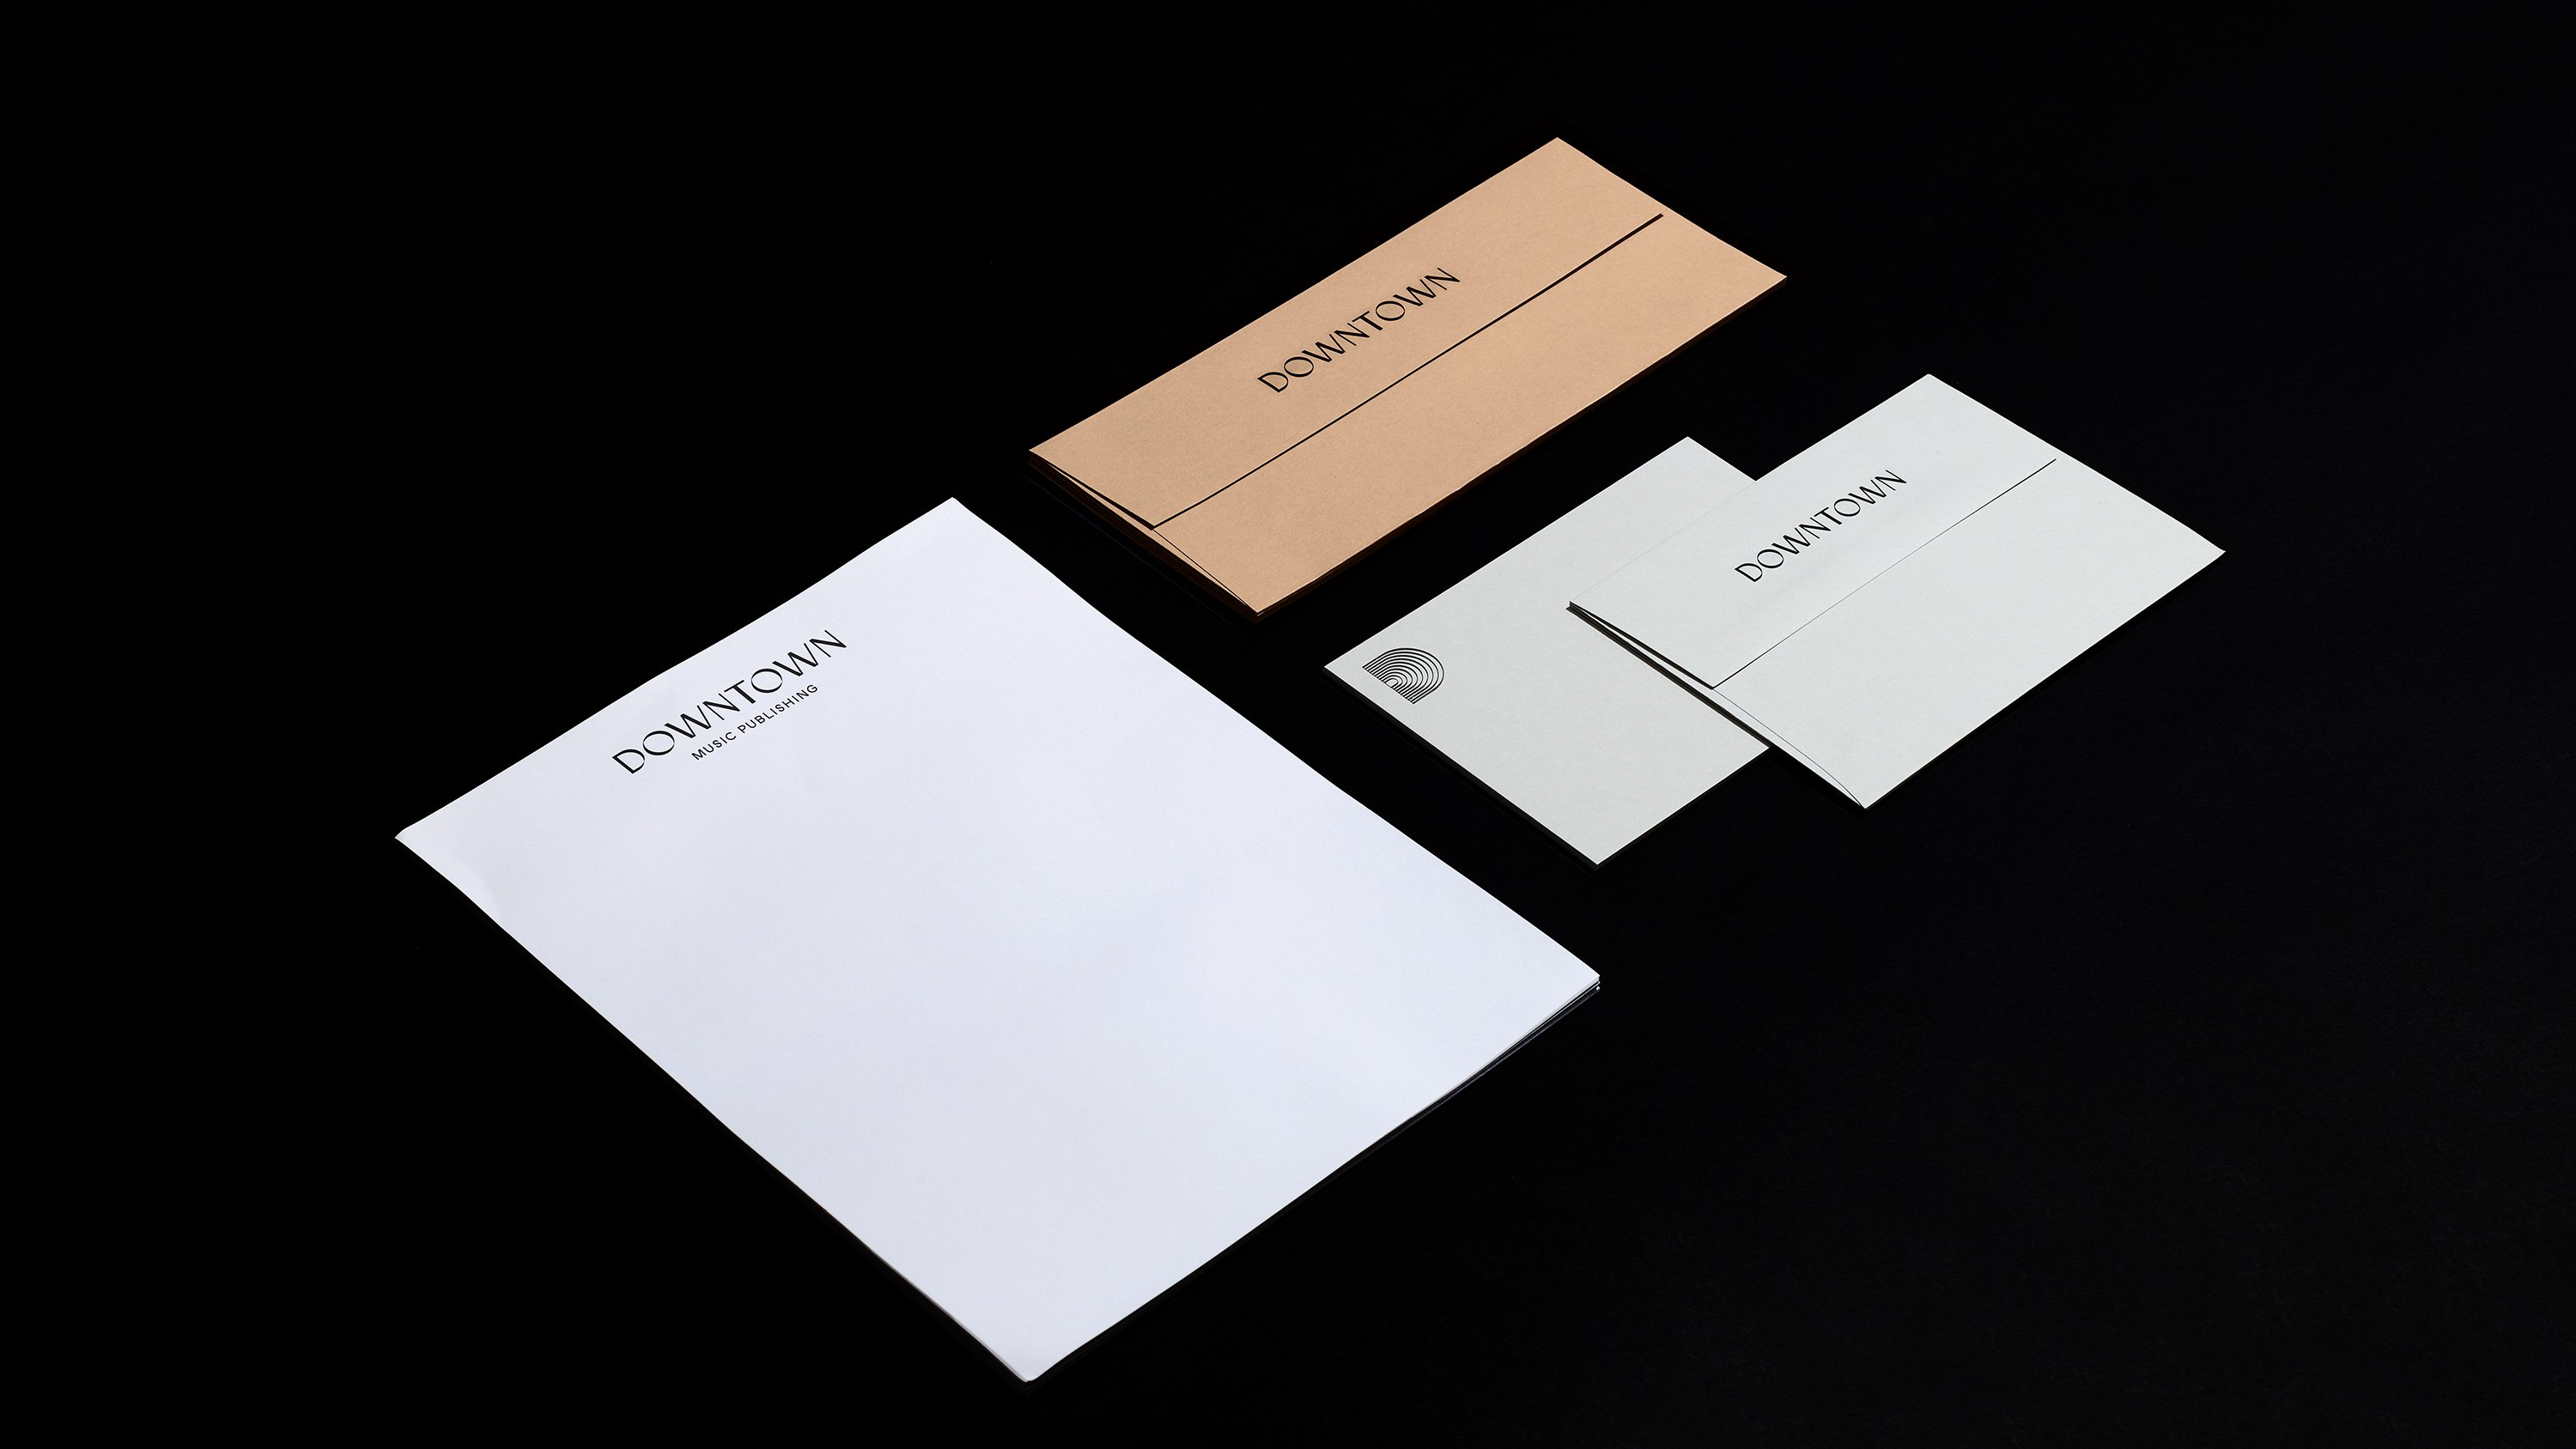 Downtown Music Group letterhead and matching envelopes, print design by RoAndCo Studio